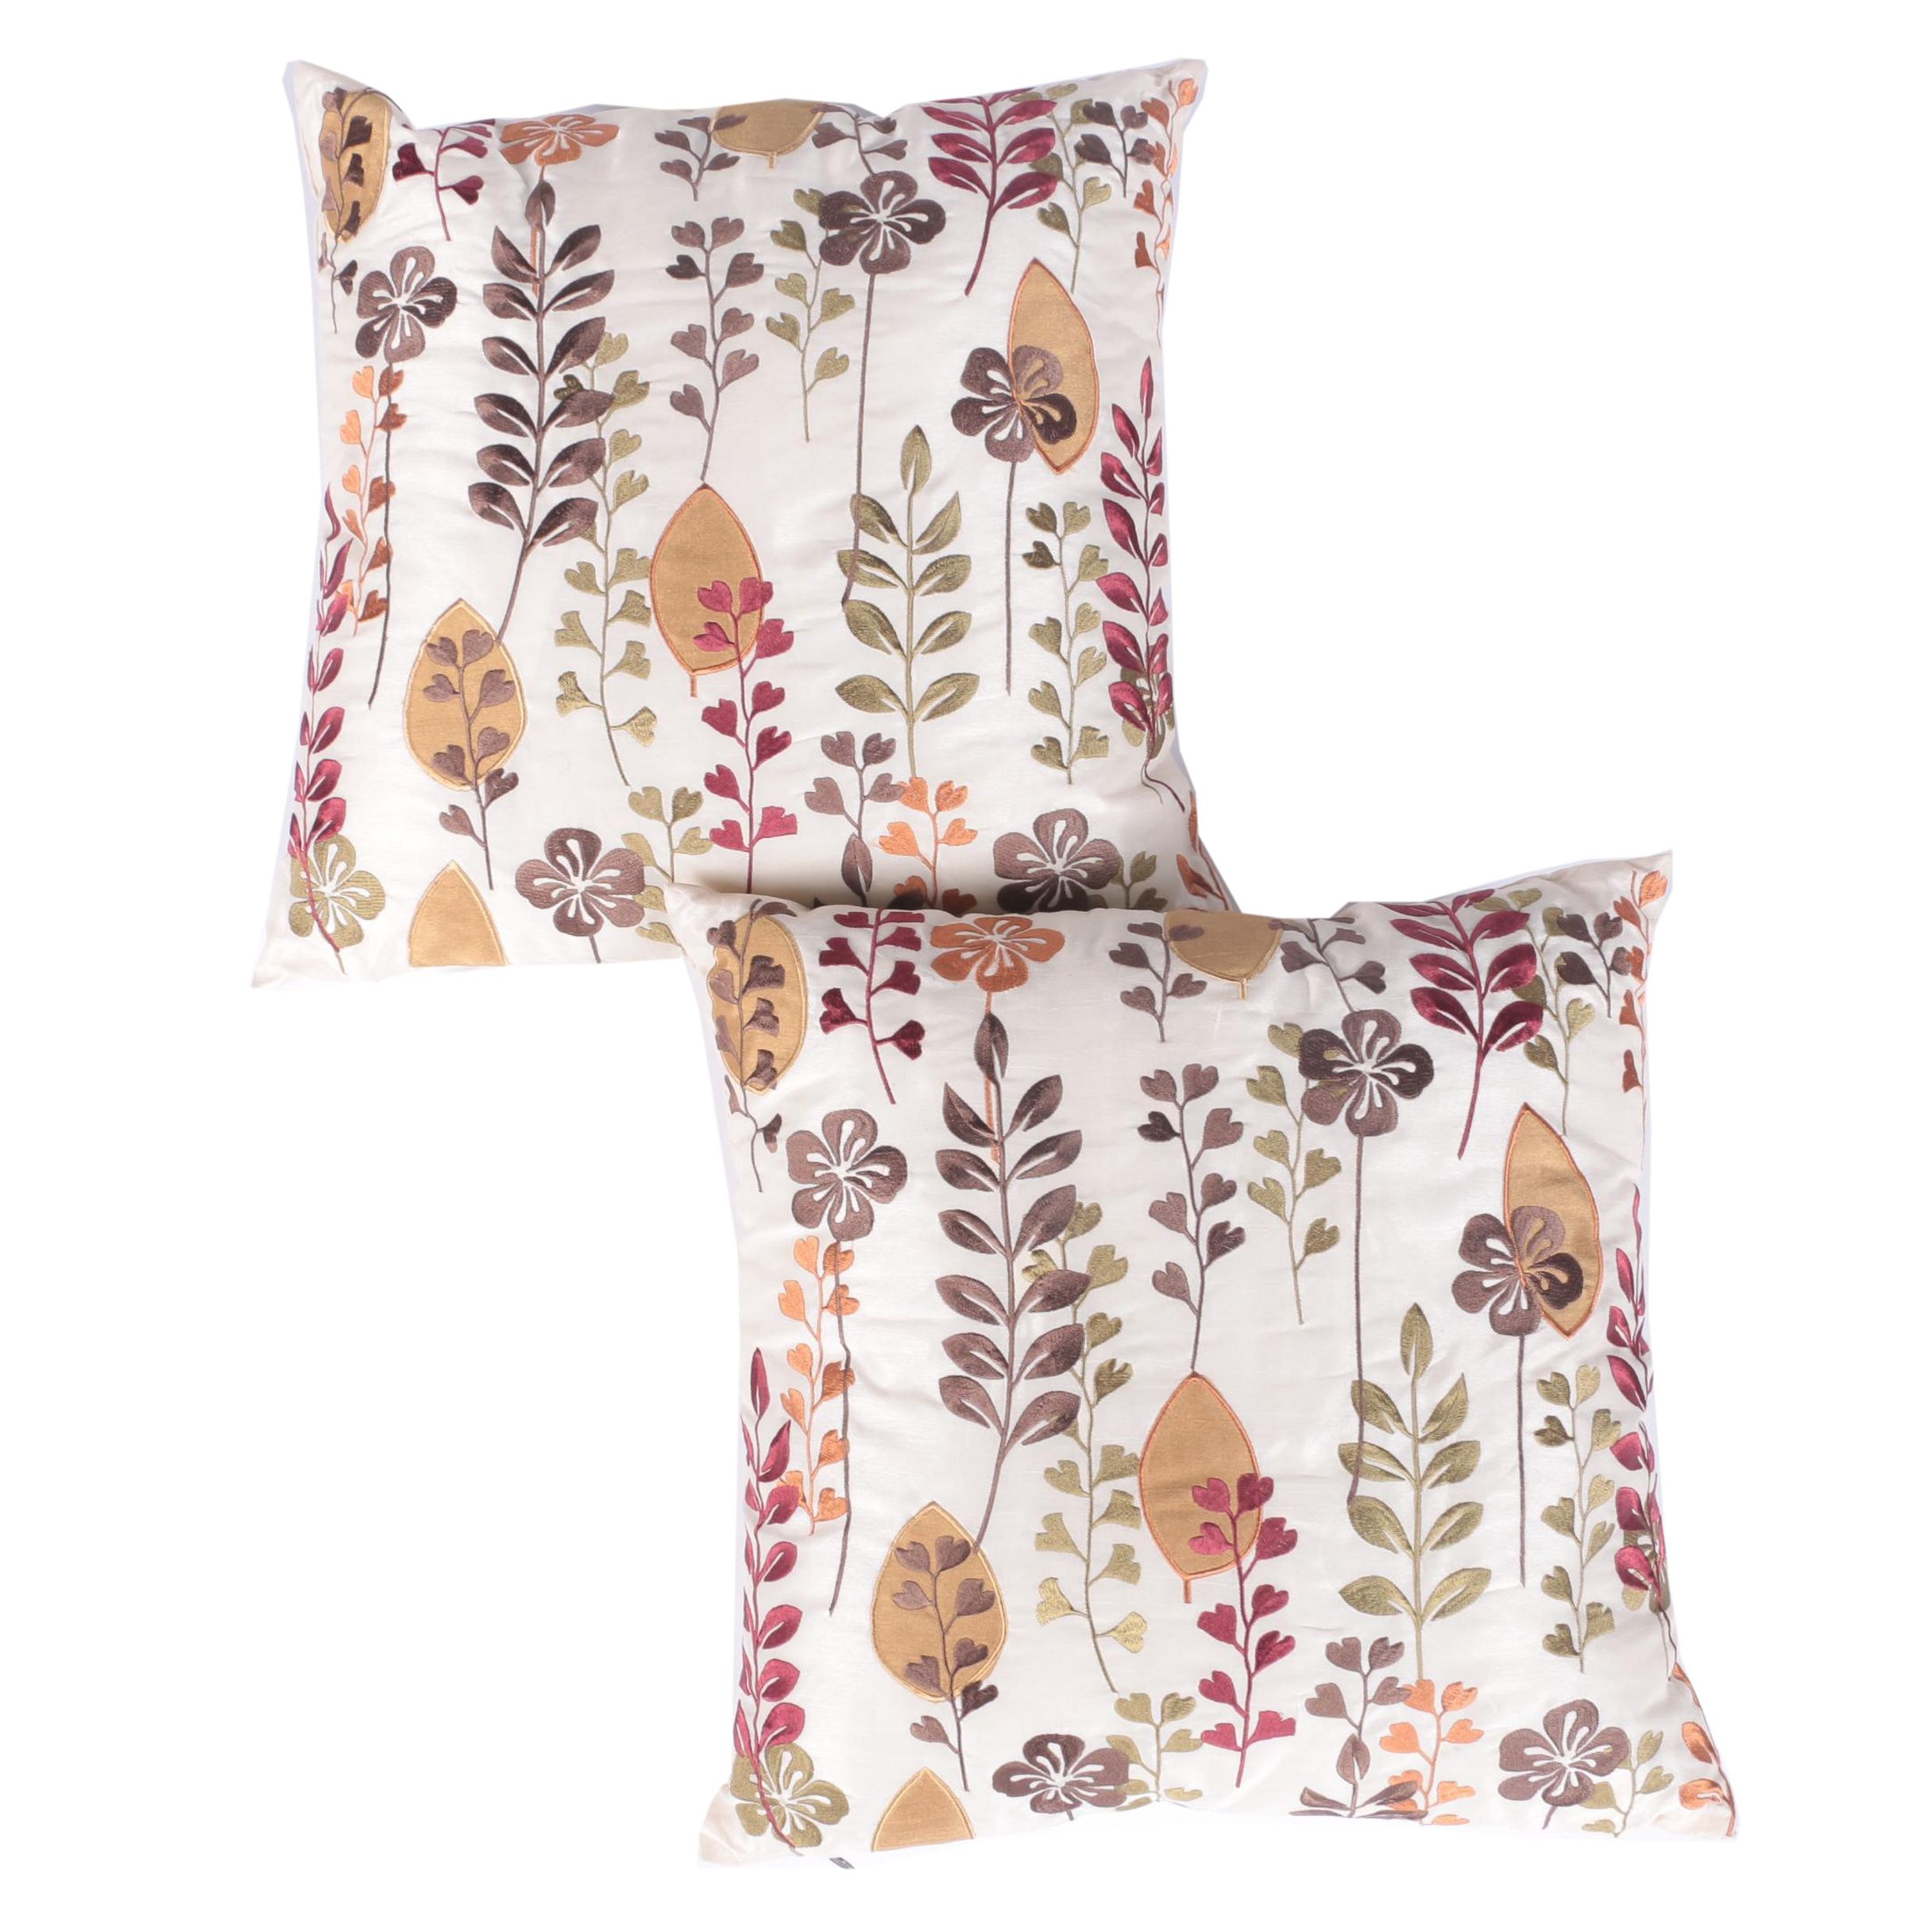 Pair of Pier 1 Machine Embroidered Accent Pillows